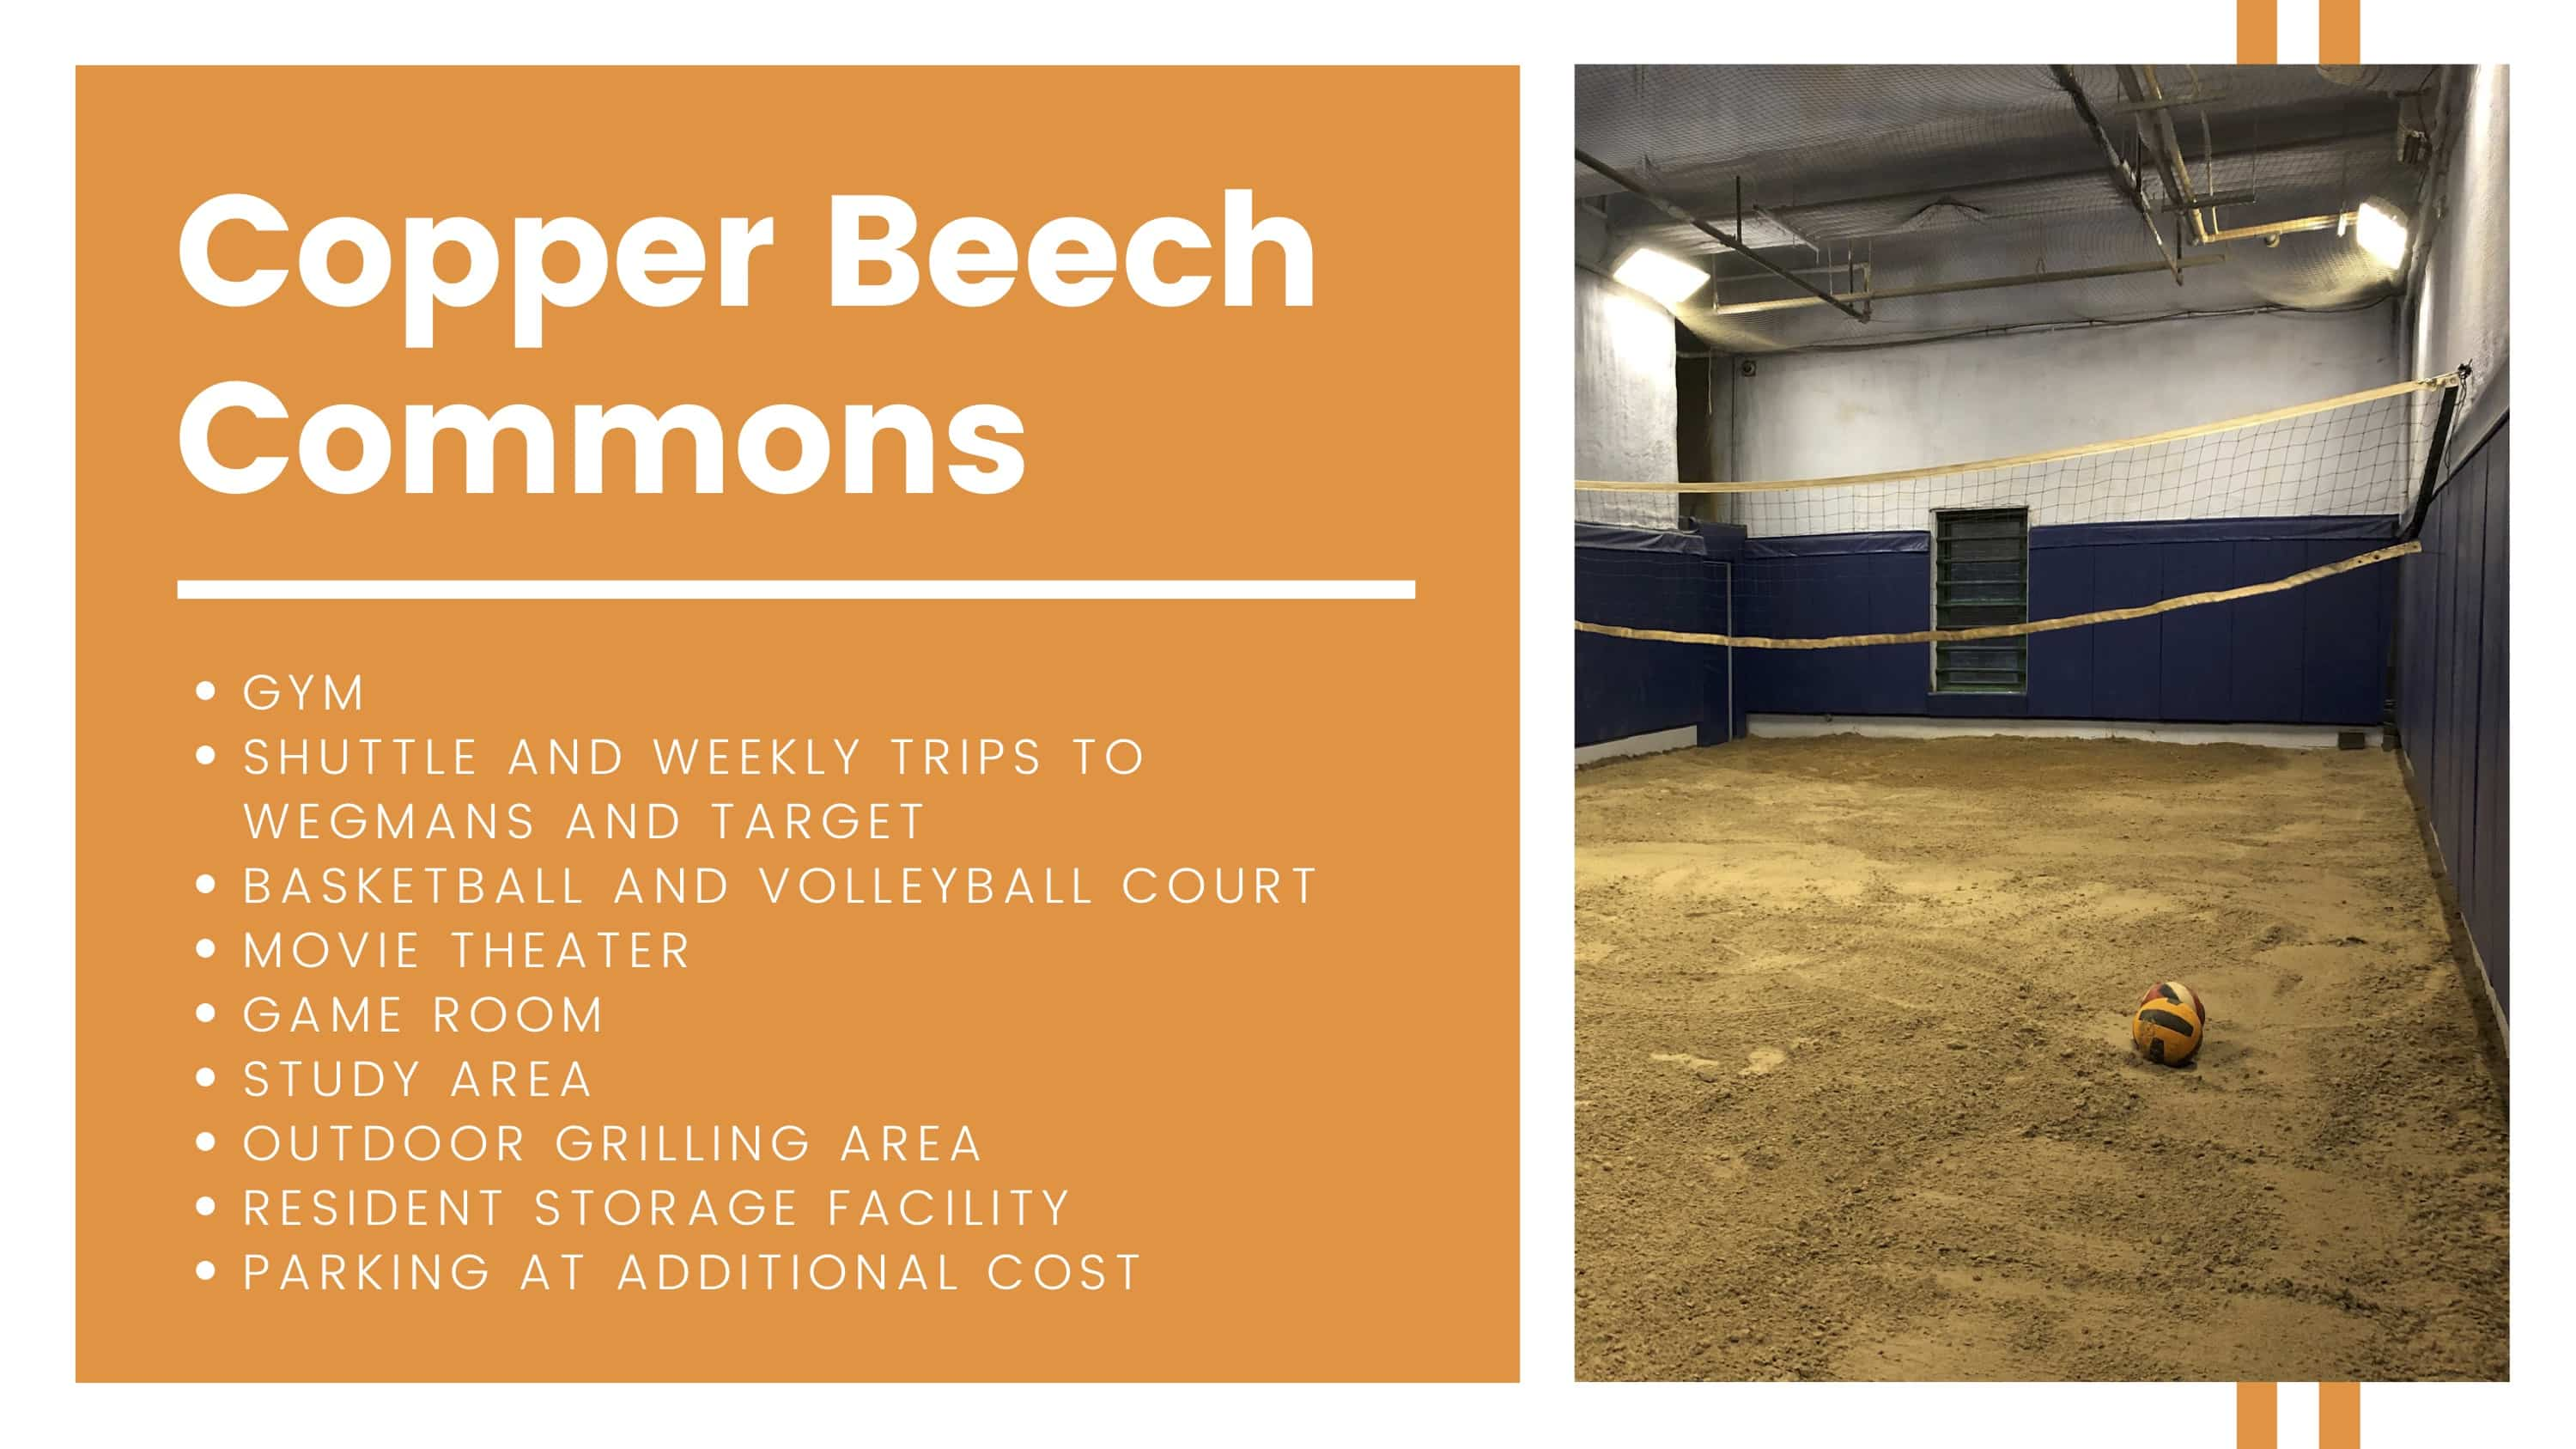 Copper Beech Commons amenities breakdown